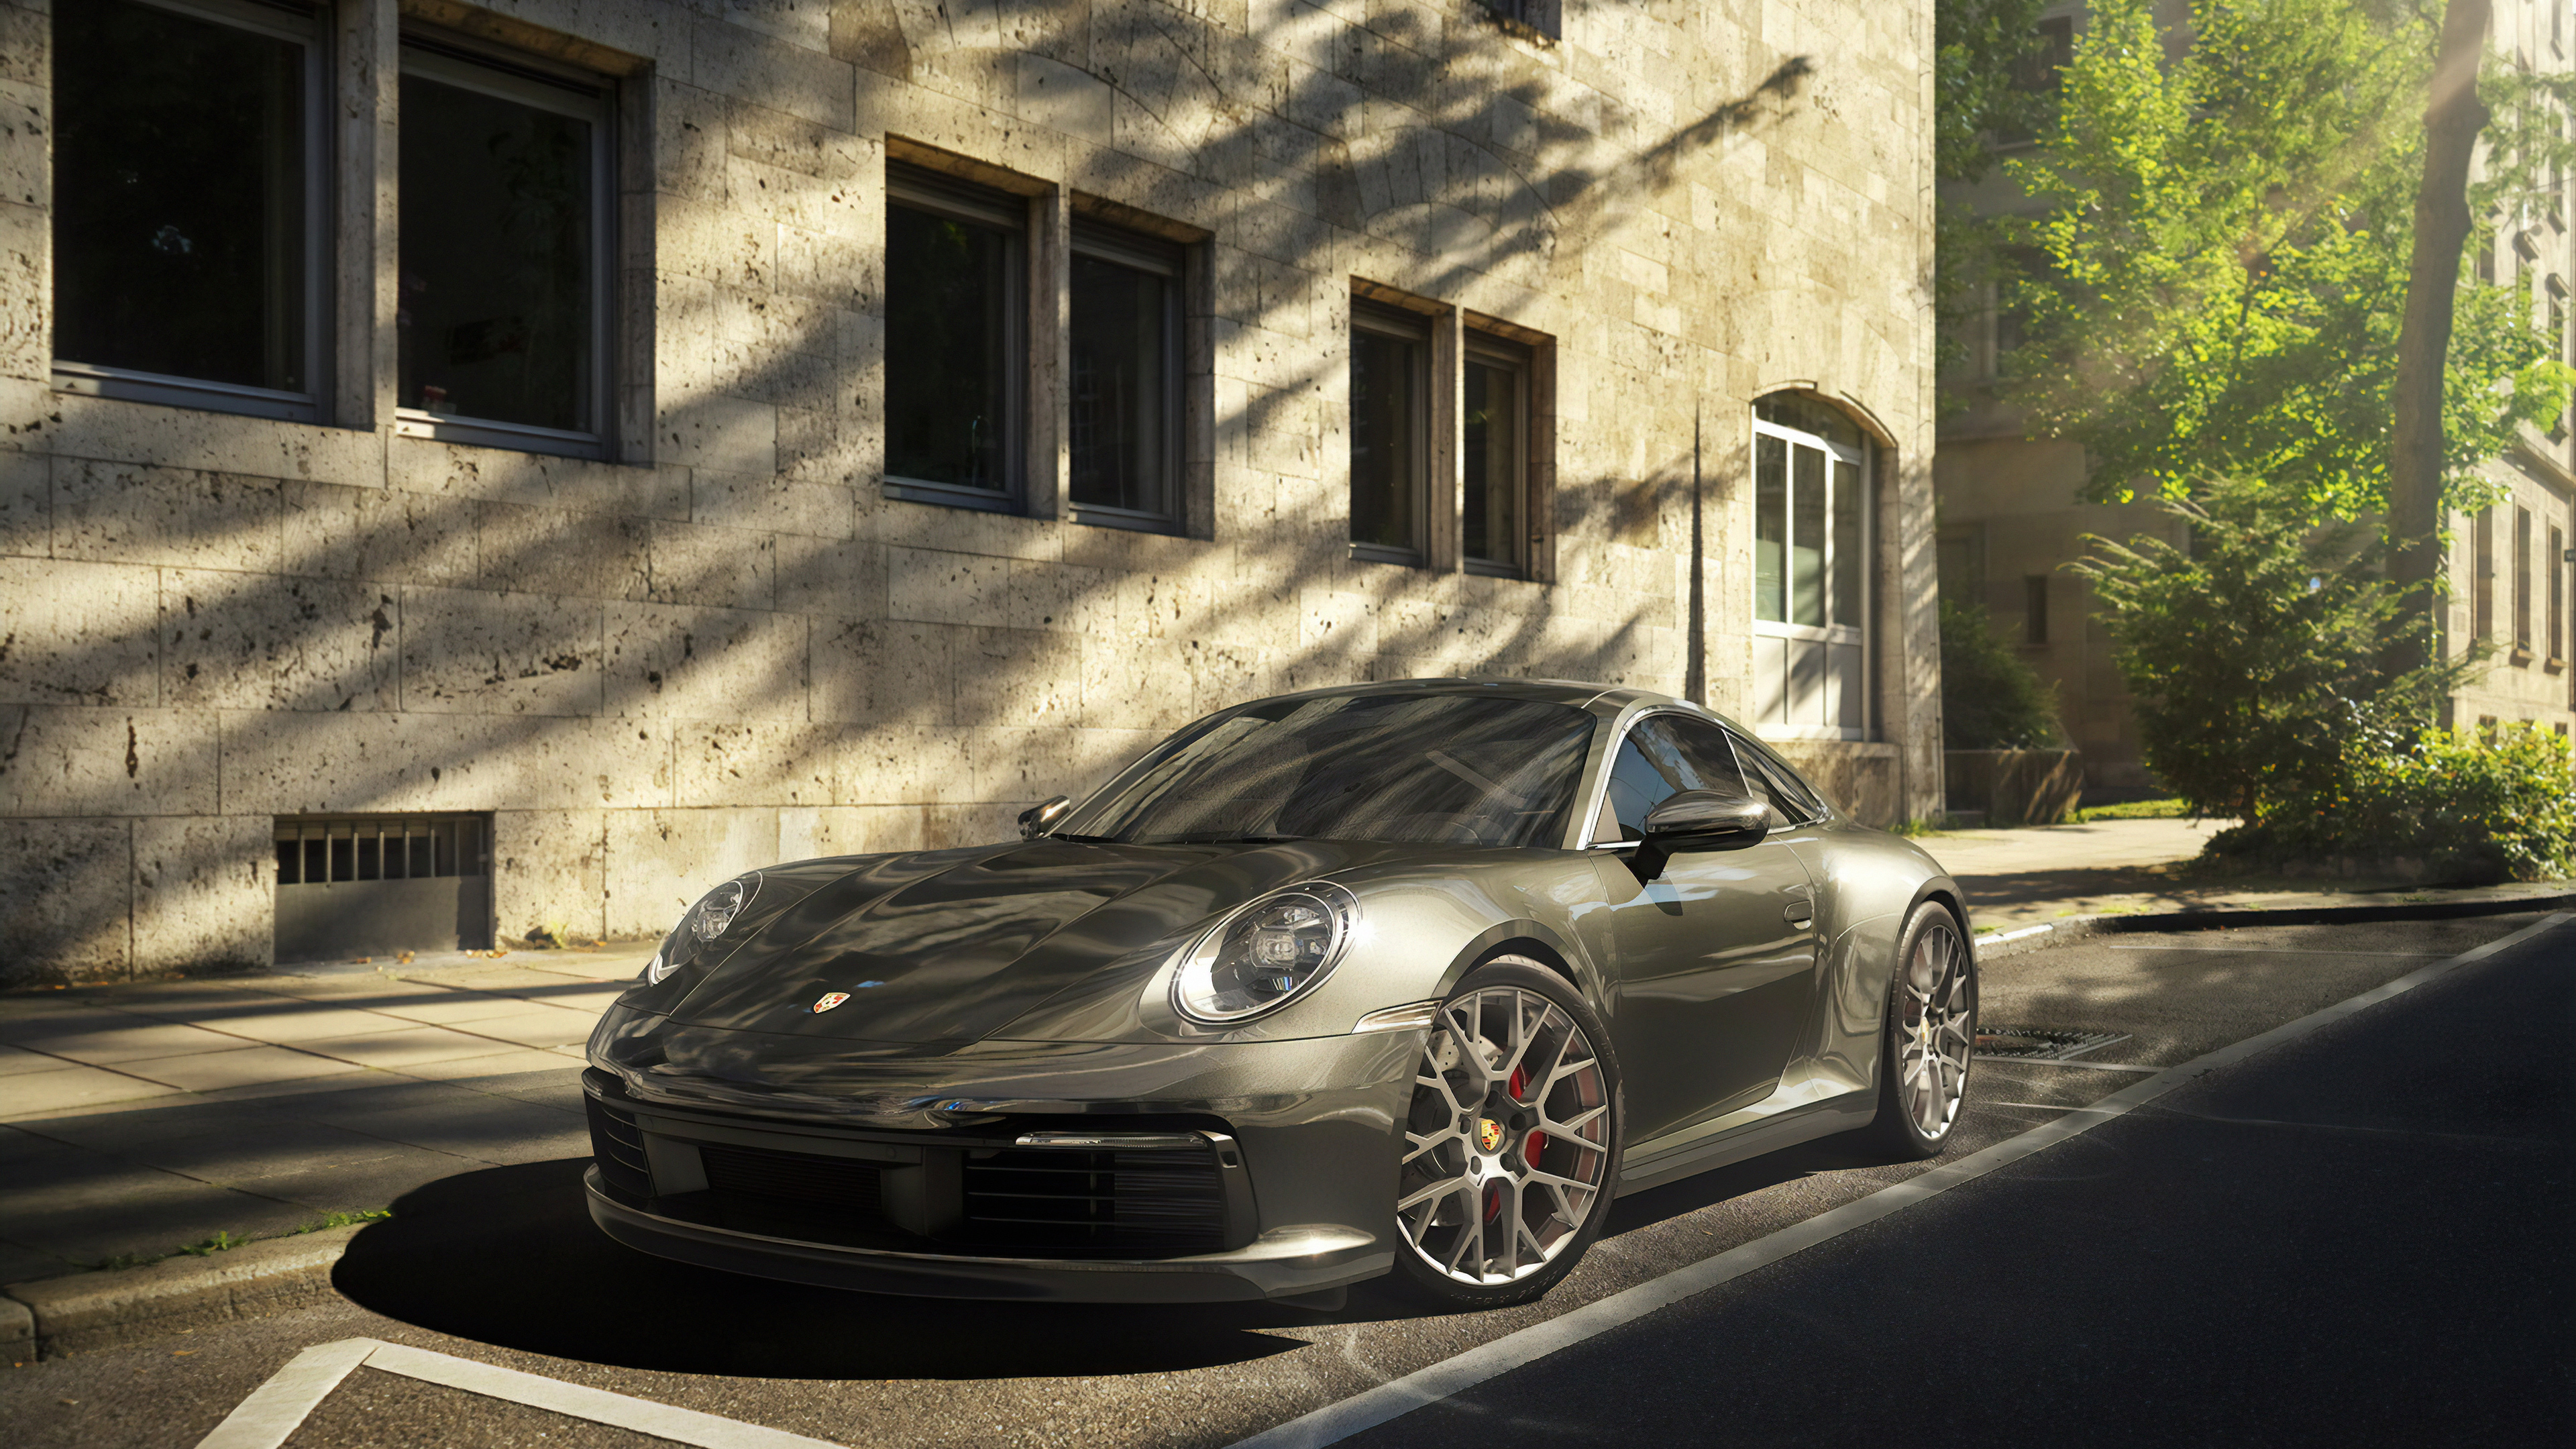 porsche 1565055036 - Porsche - porsche wallpapers, hd-wallpapers, cars wallpapers, behance wallpapers, 4k-wallpapers, 2019 cars wallpapers